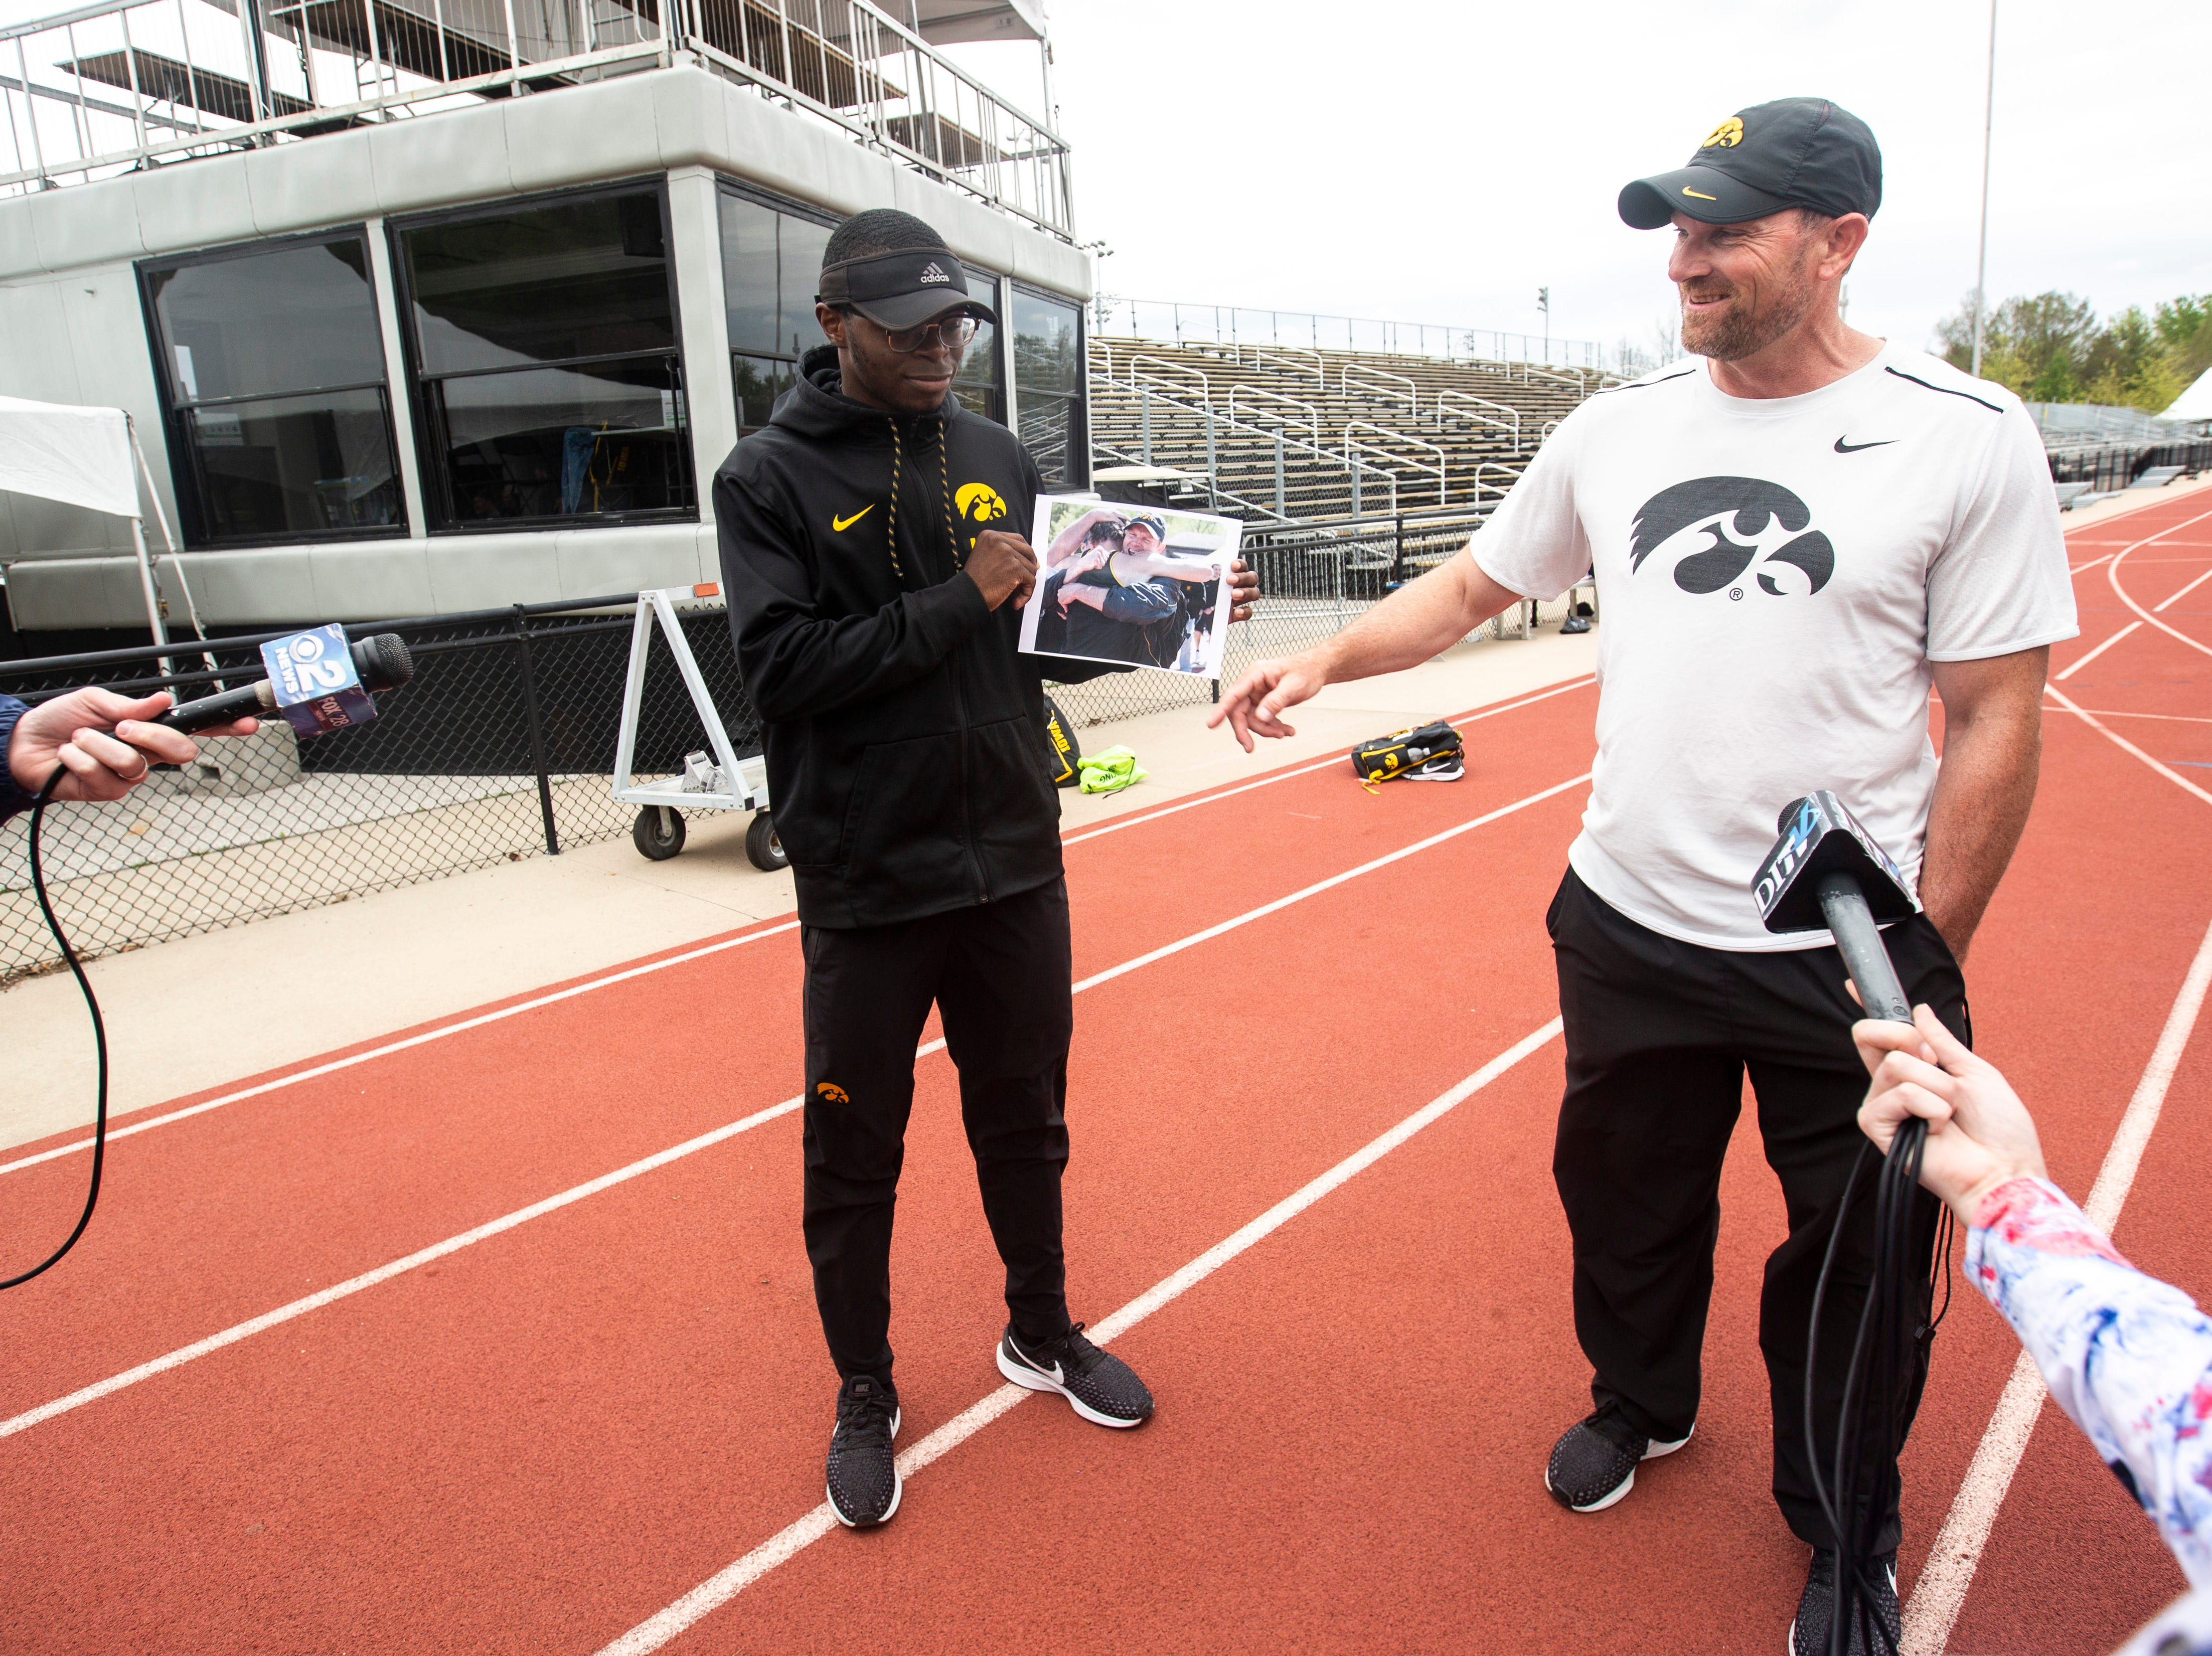 Iowa junior Jaylan McConico, left, holds up a photo of Joey Woody, the University of Iowa director of track and field, from 2011 while speaking with reporters, Tuesday, May 7, 2019, Francis X. Cretzmeyer Track in Iowa City, Iowa.